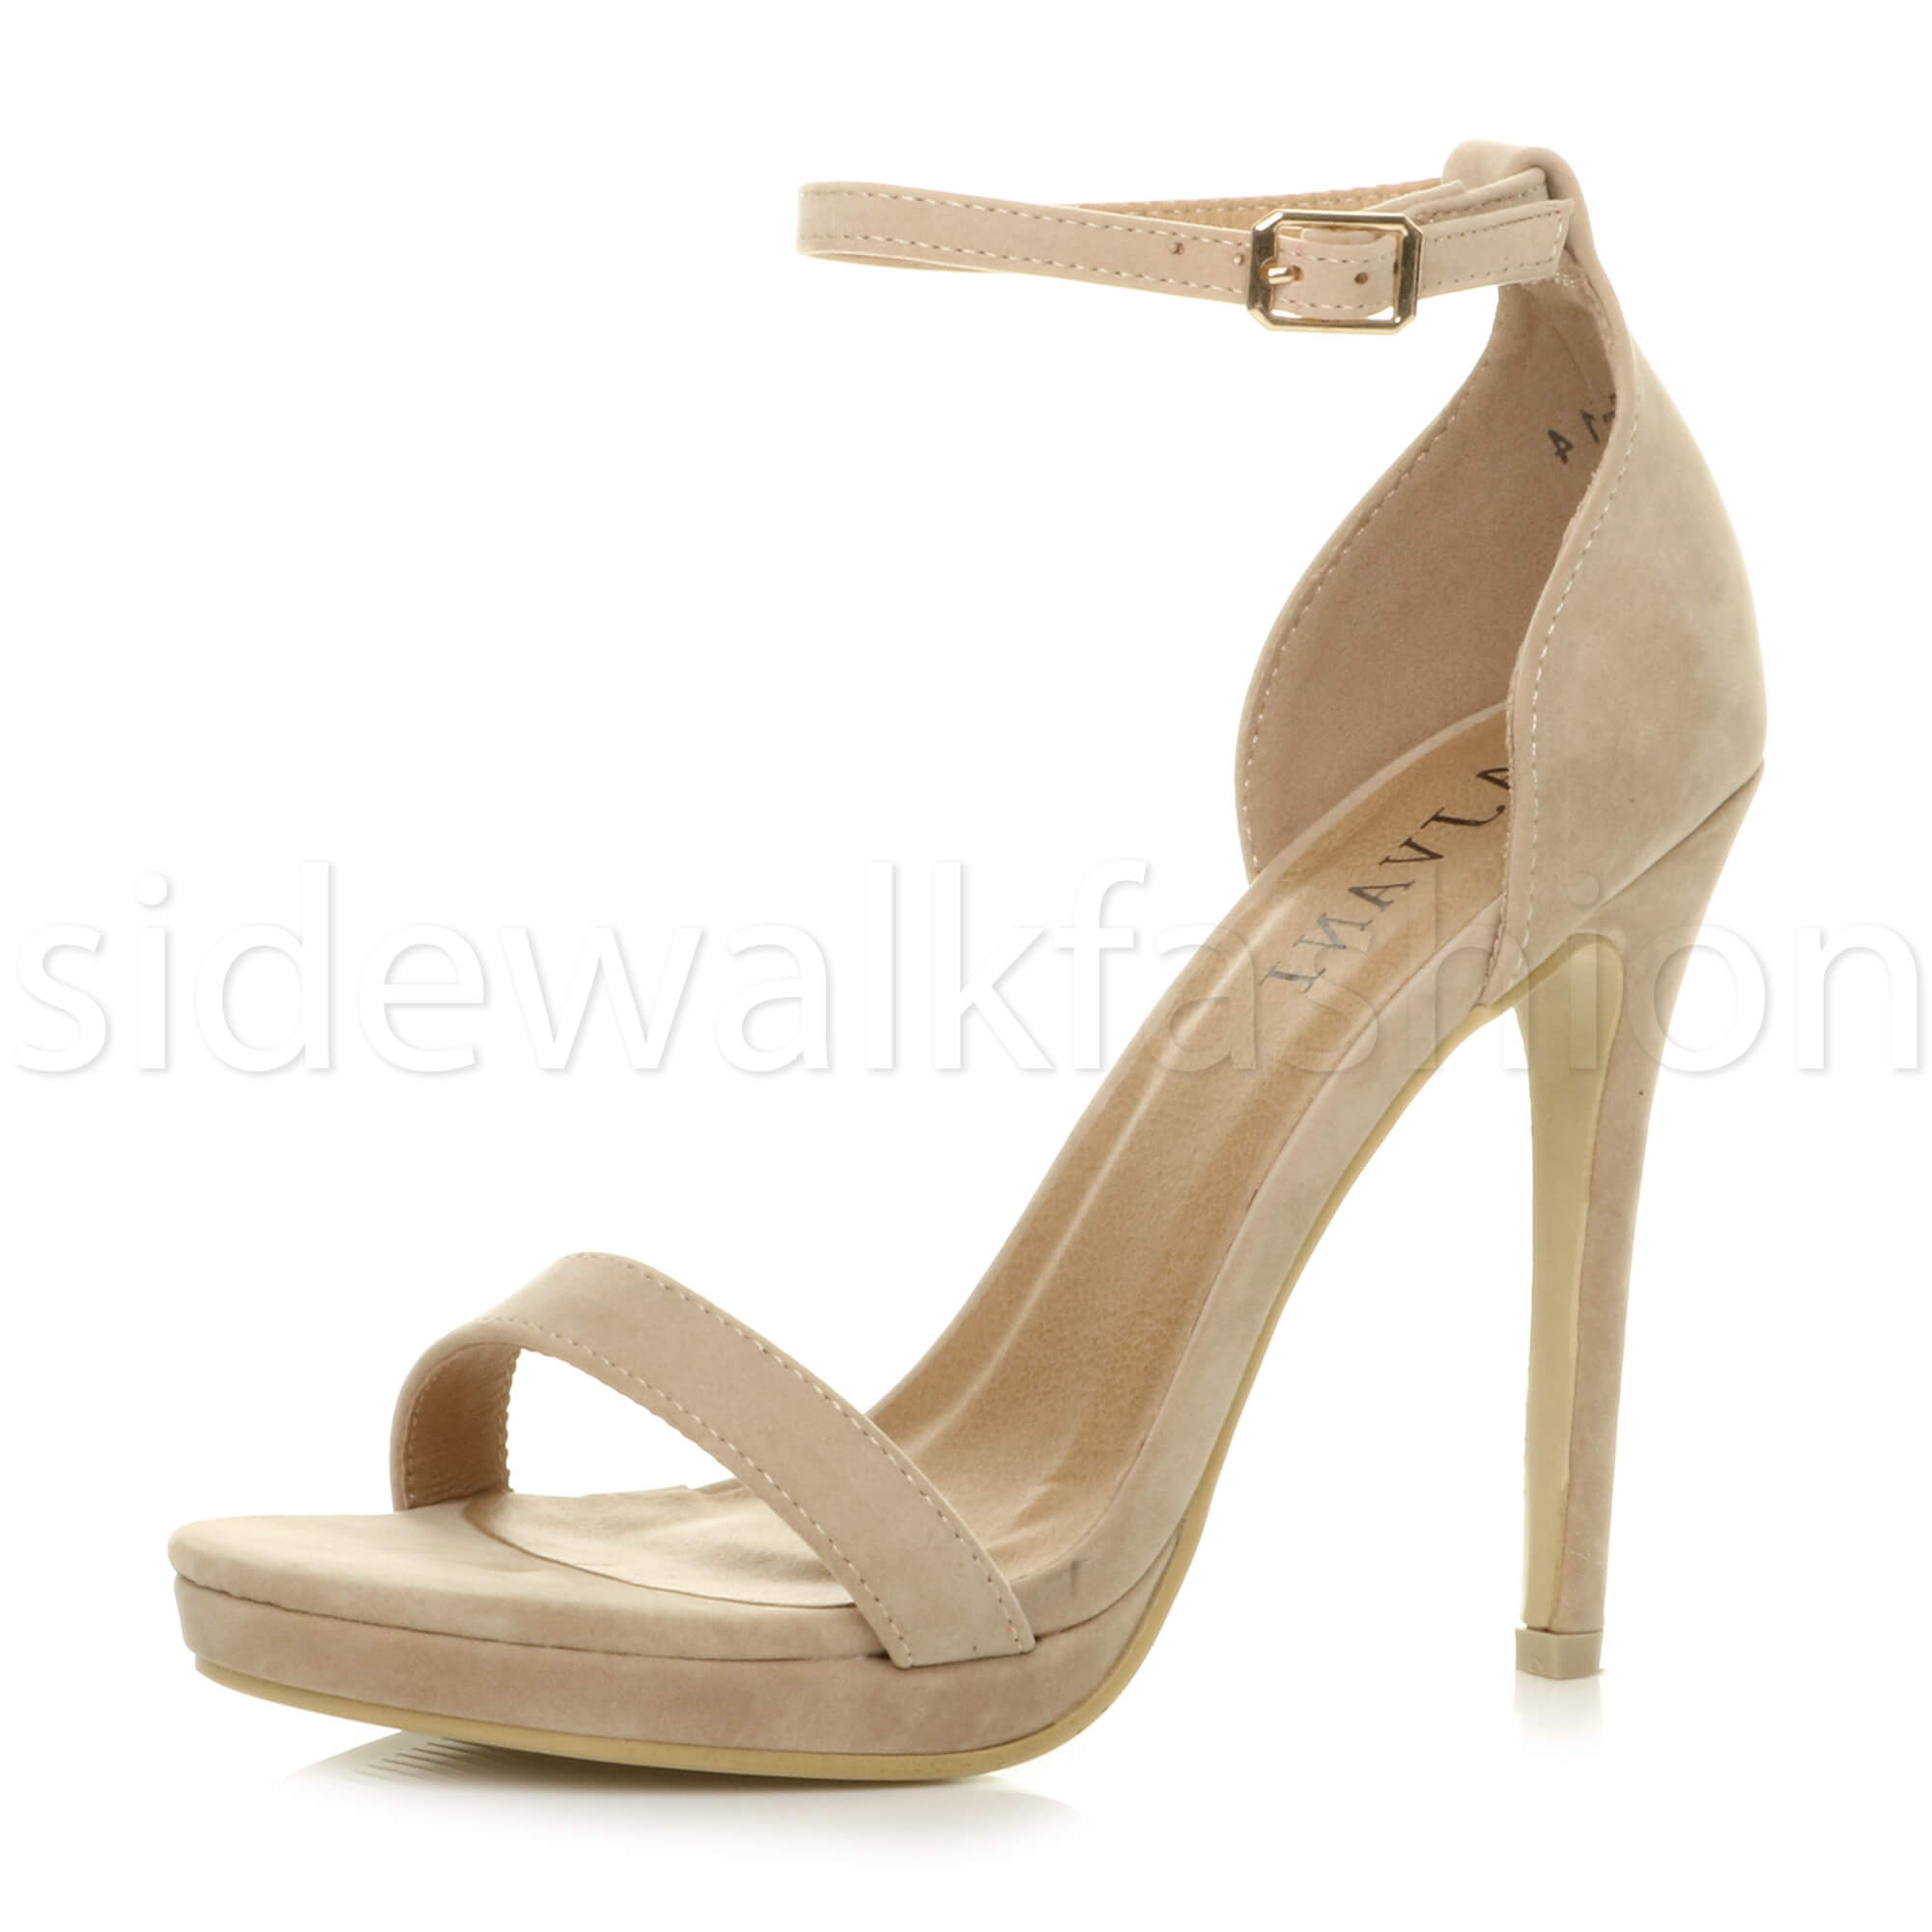 1059cd0278f9 ... Barely There Strappy Party PEEP Toe Shoes Sandals Size UK 6   EU 39    US 8 Nude Suede. About this product. Picture 1 of 8  Picture 2 of 8 ...